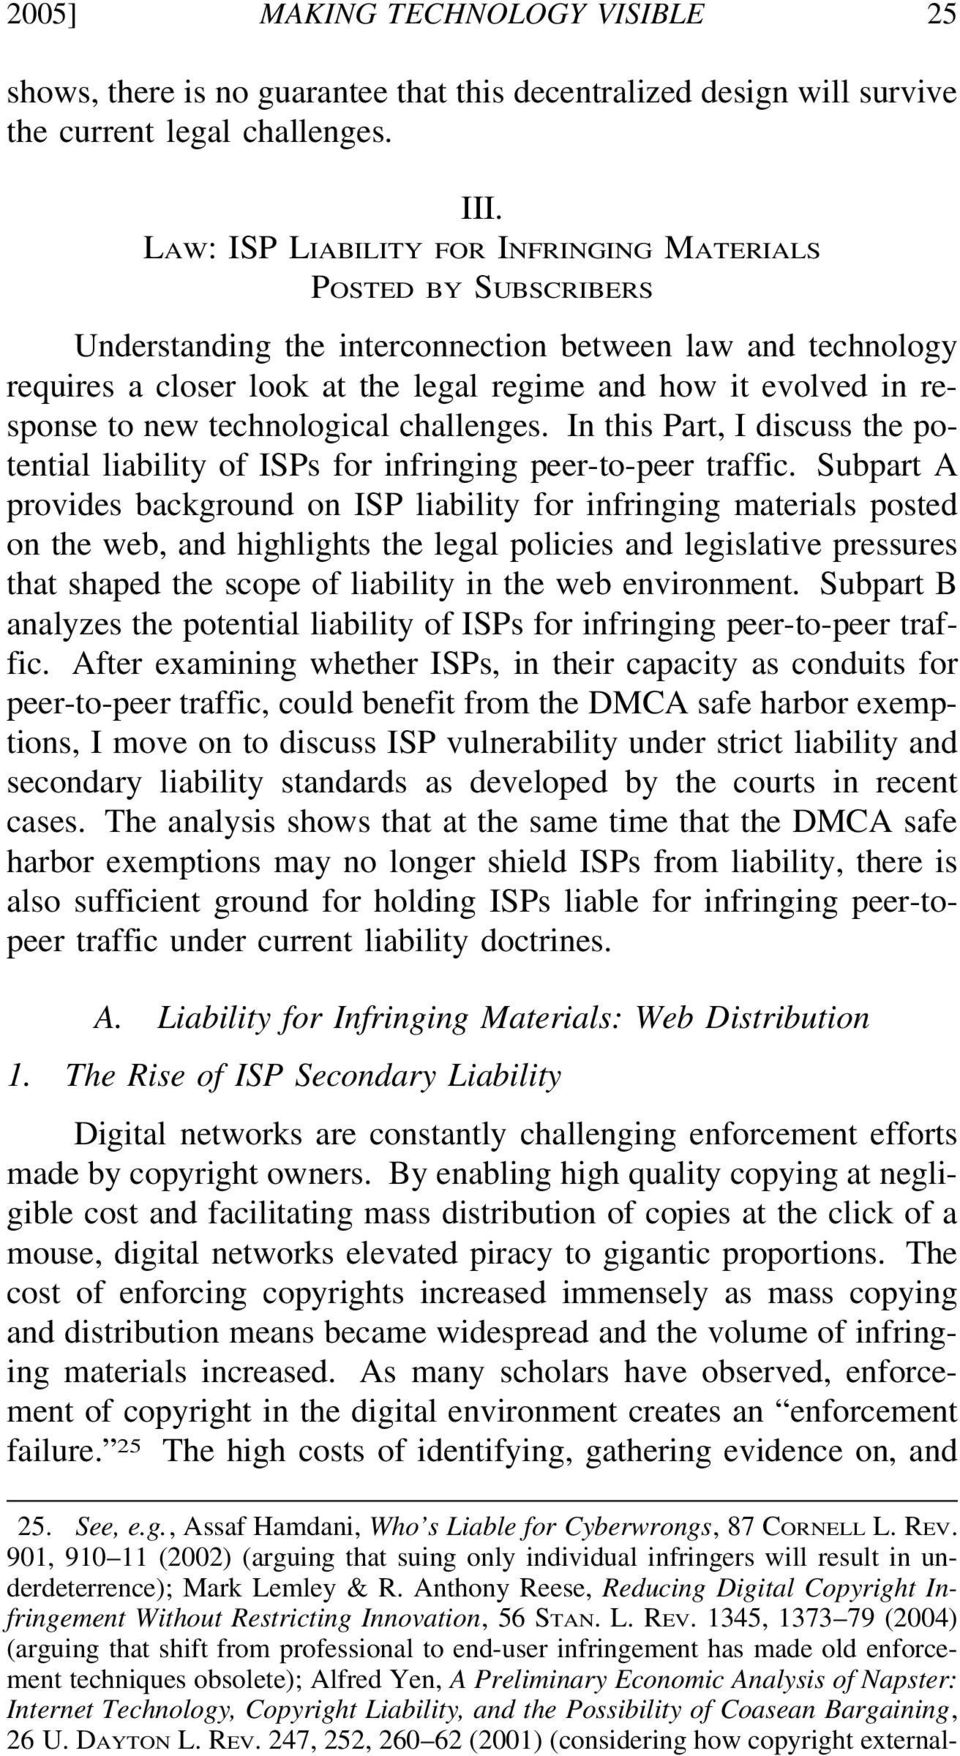 response to new technological challenges. In this Part, I discuss the potential liability of ISPs for infringing peer-to-peer traffic.